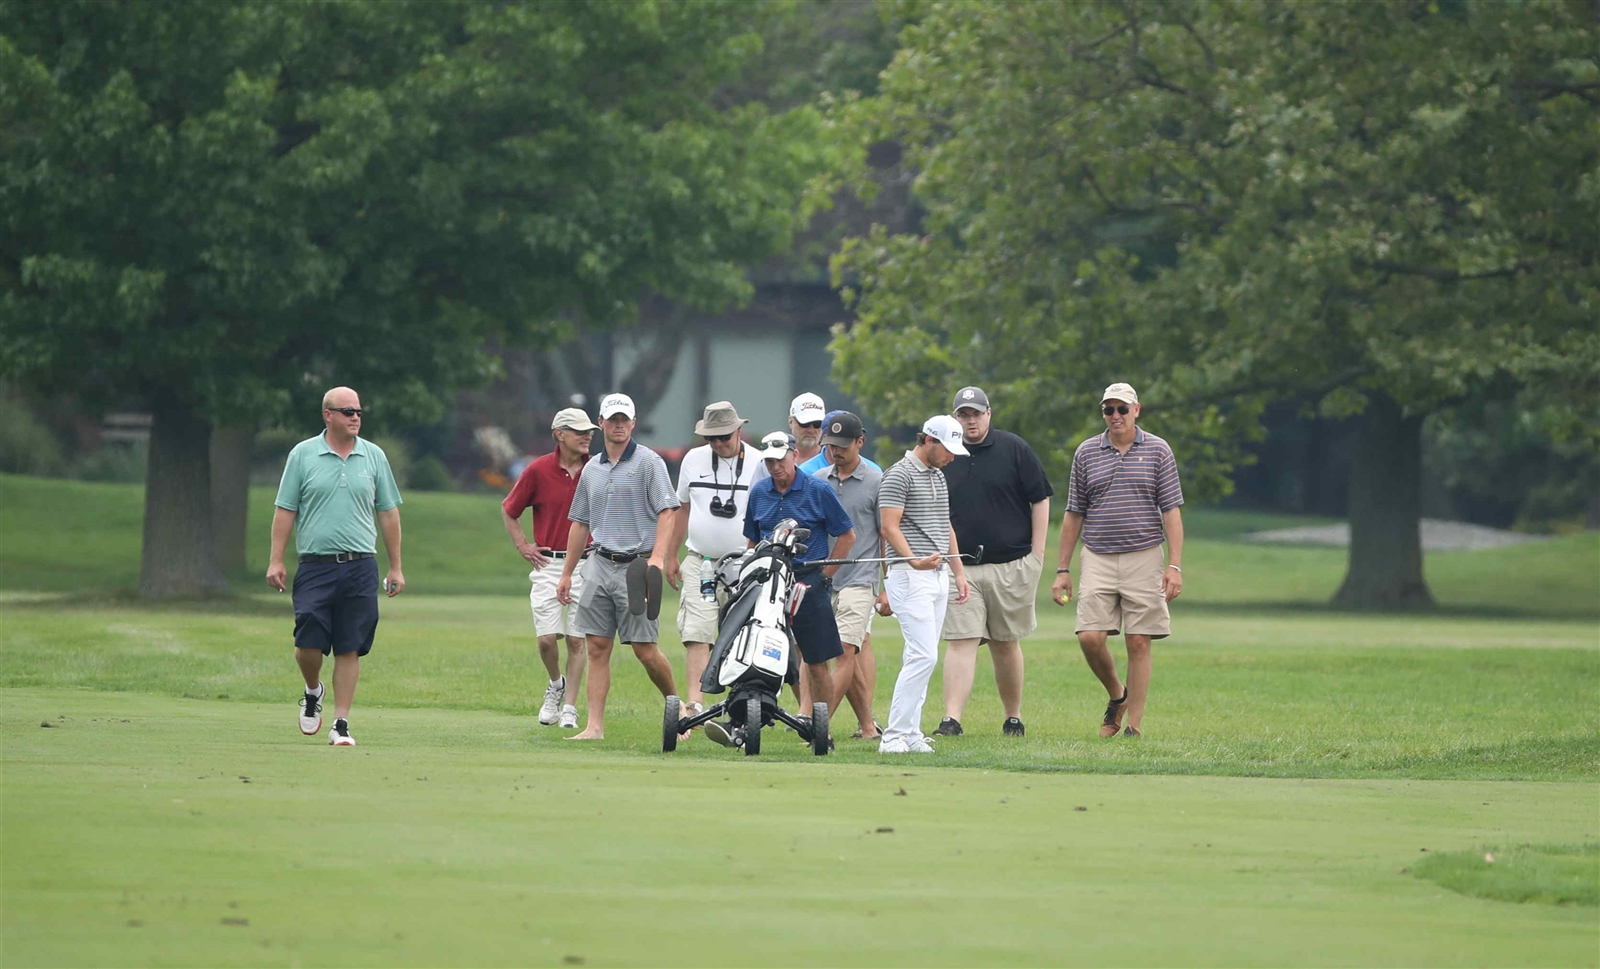 Harrison Endycott hits a shot off the ninth hole during the first round of the 59th Annual Porter Cup.